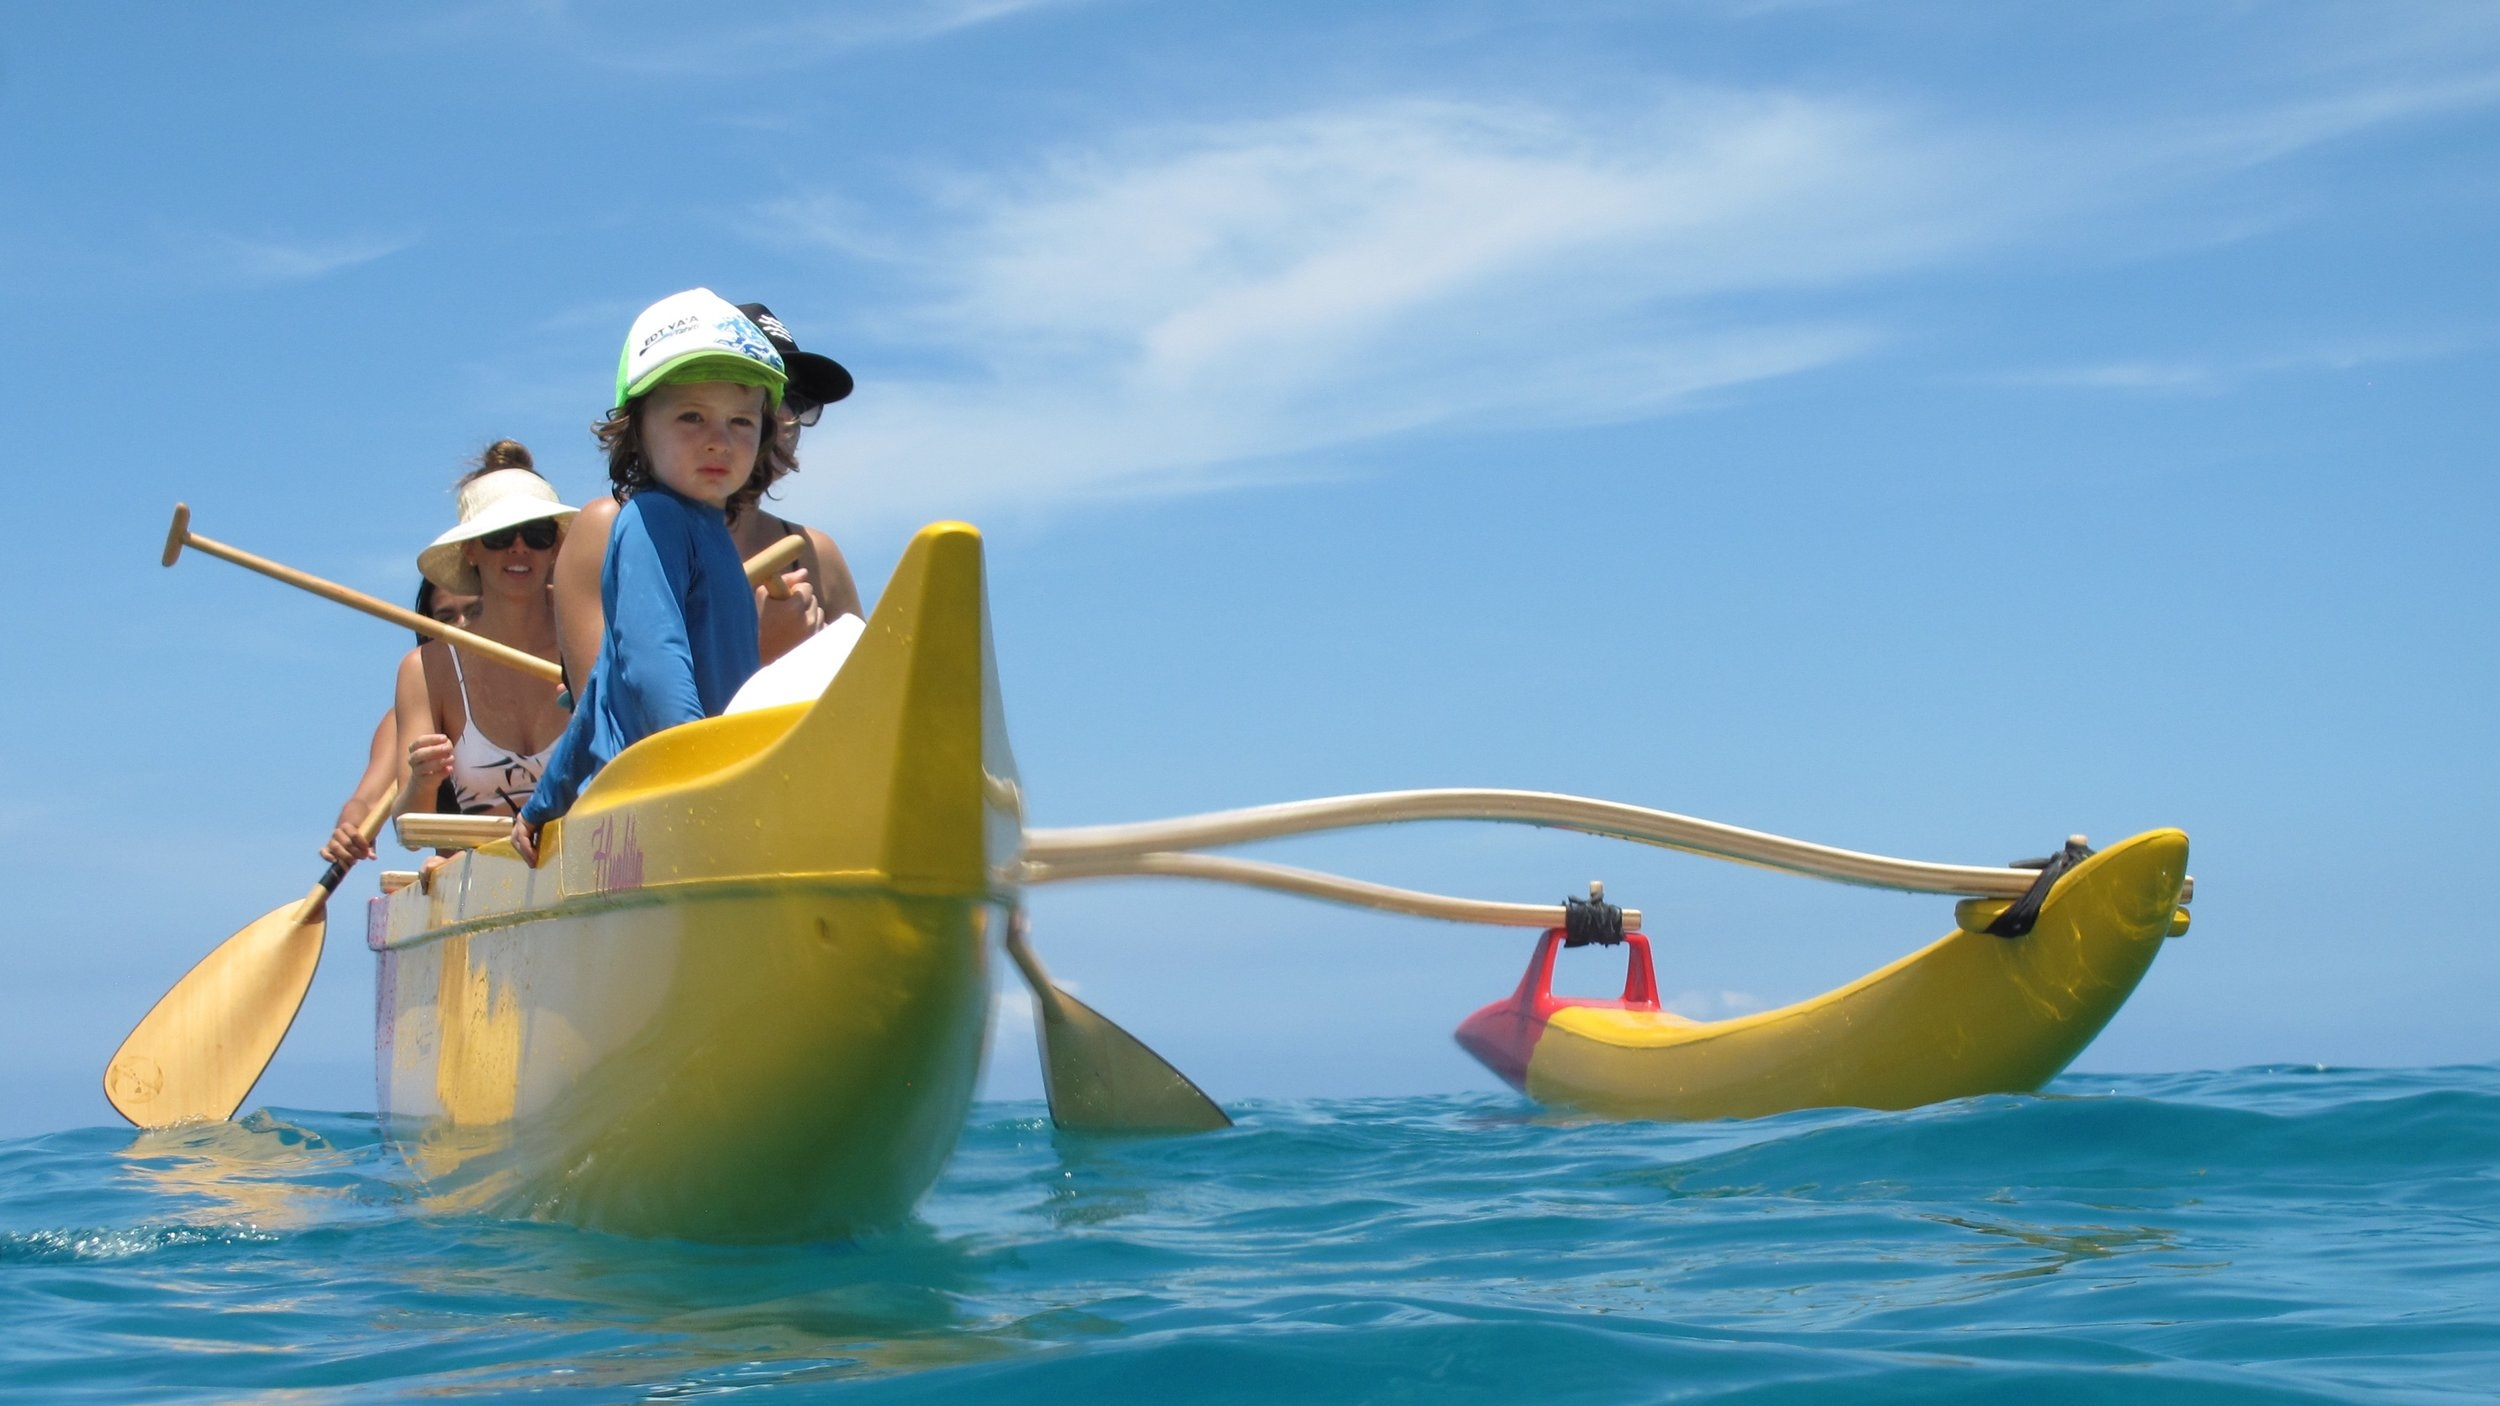 CANOE ADVENTURE - Whale watching, dolphin encounters, or snorkel a fish sanctuary! Your private canoe adventure leaves right off the beach!